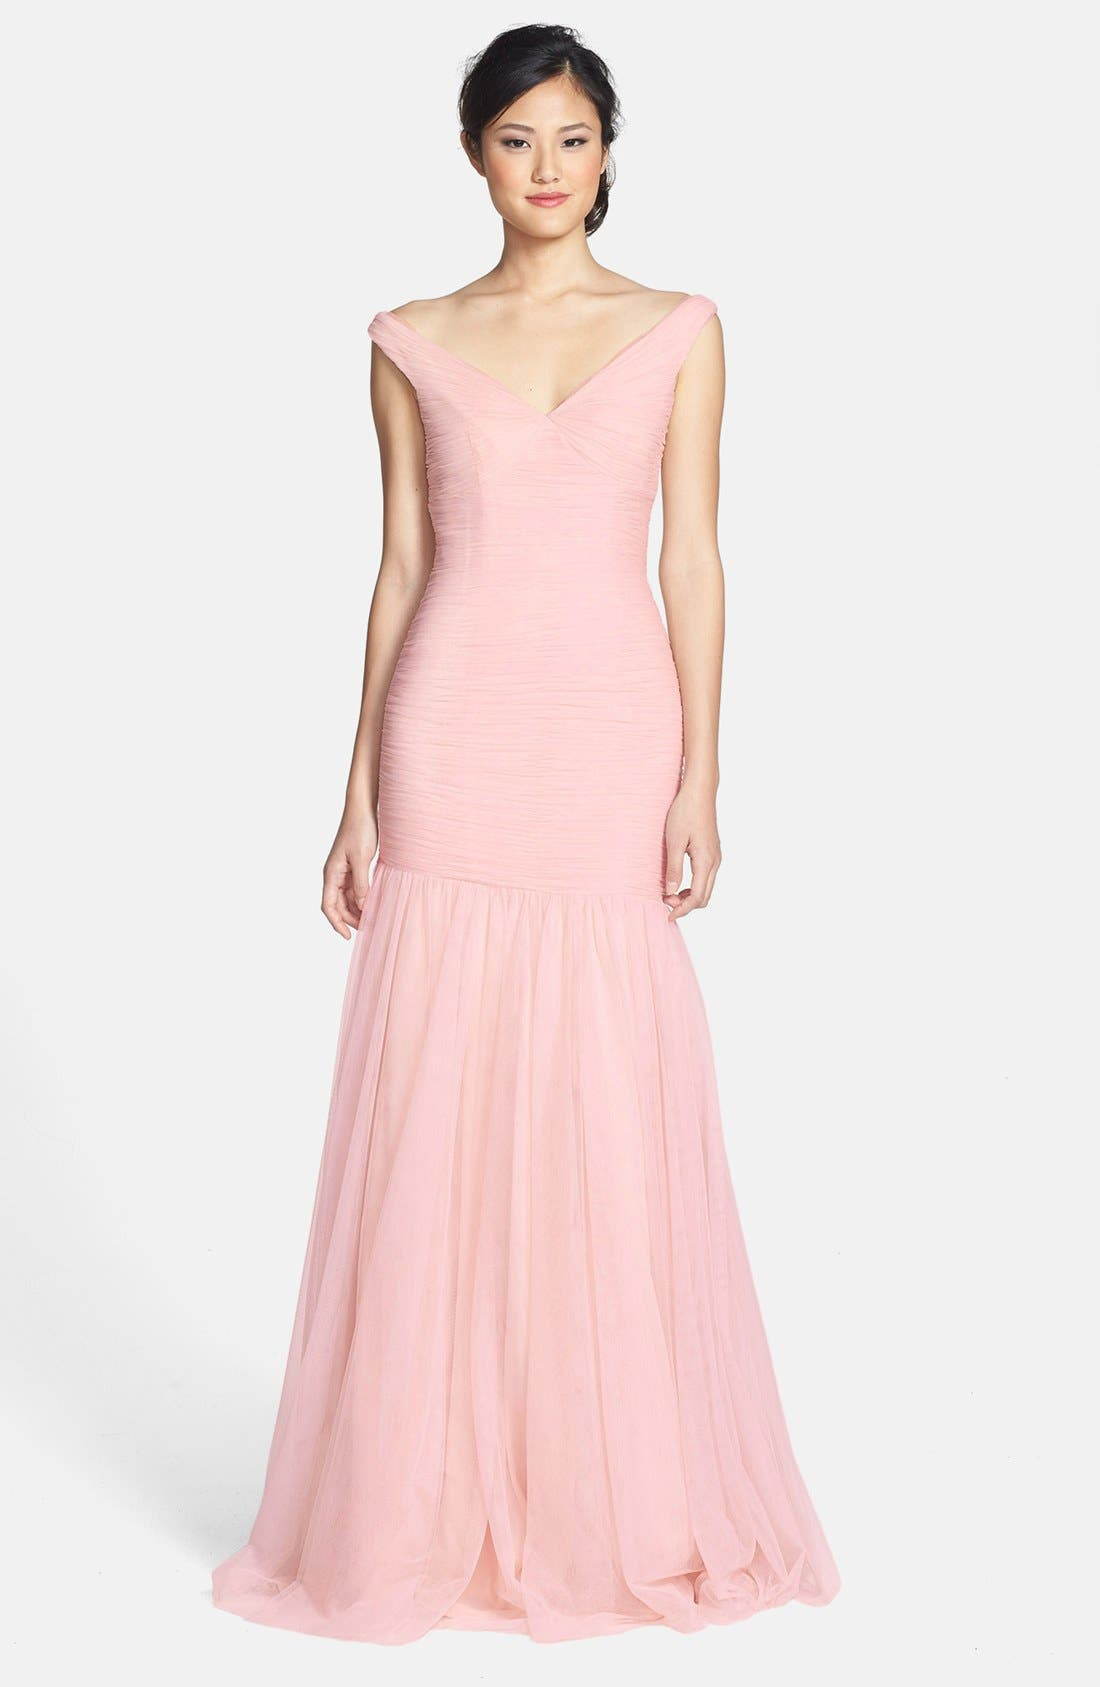 Main Image - Monique Lhuillier Bridesmaids V-Neck Shirred Tulle Trumpet Dress